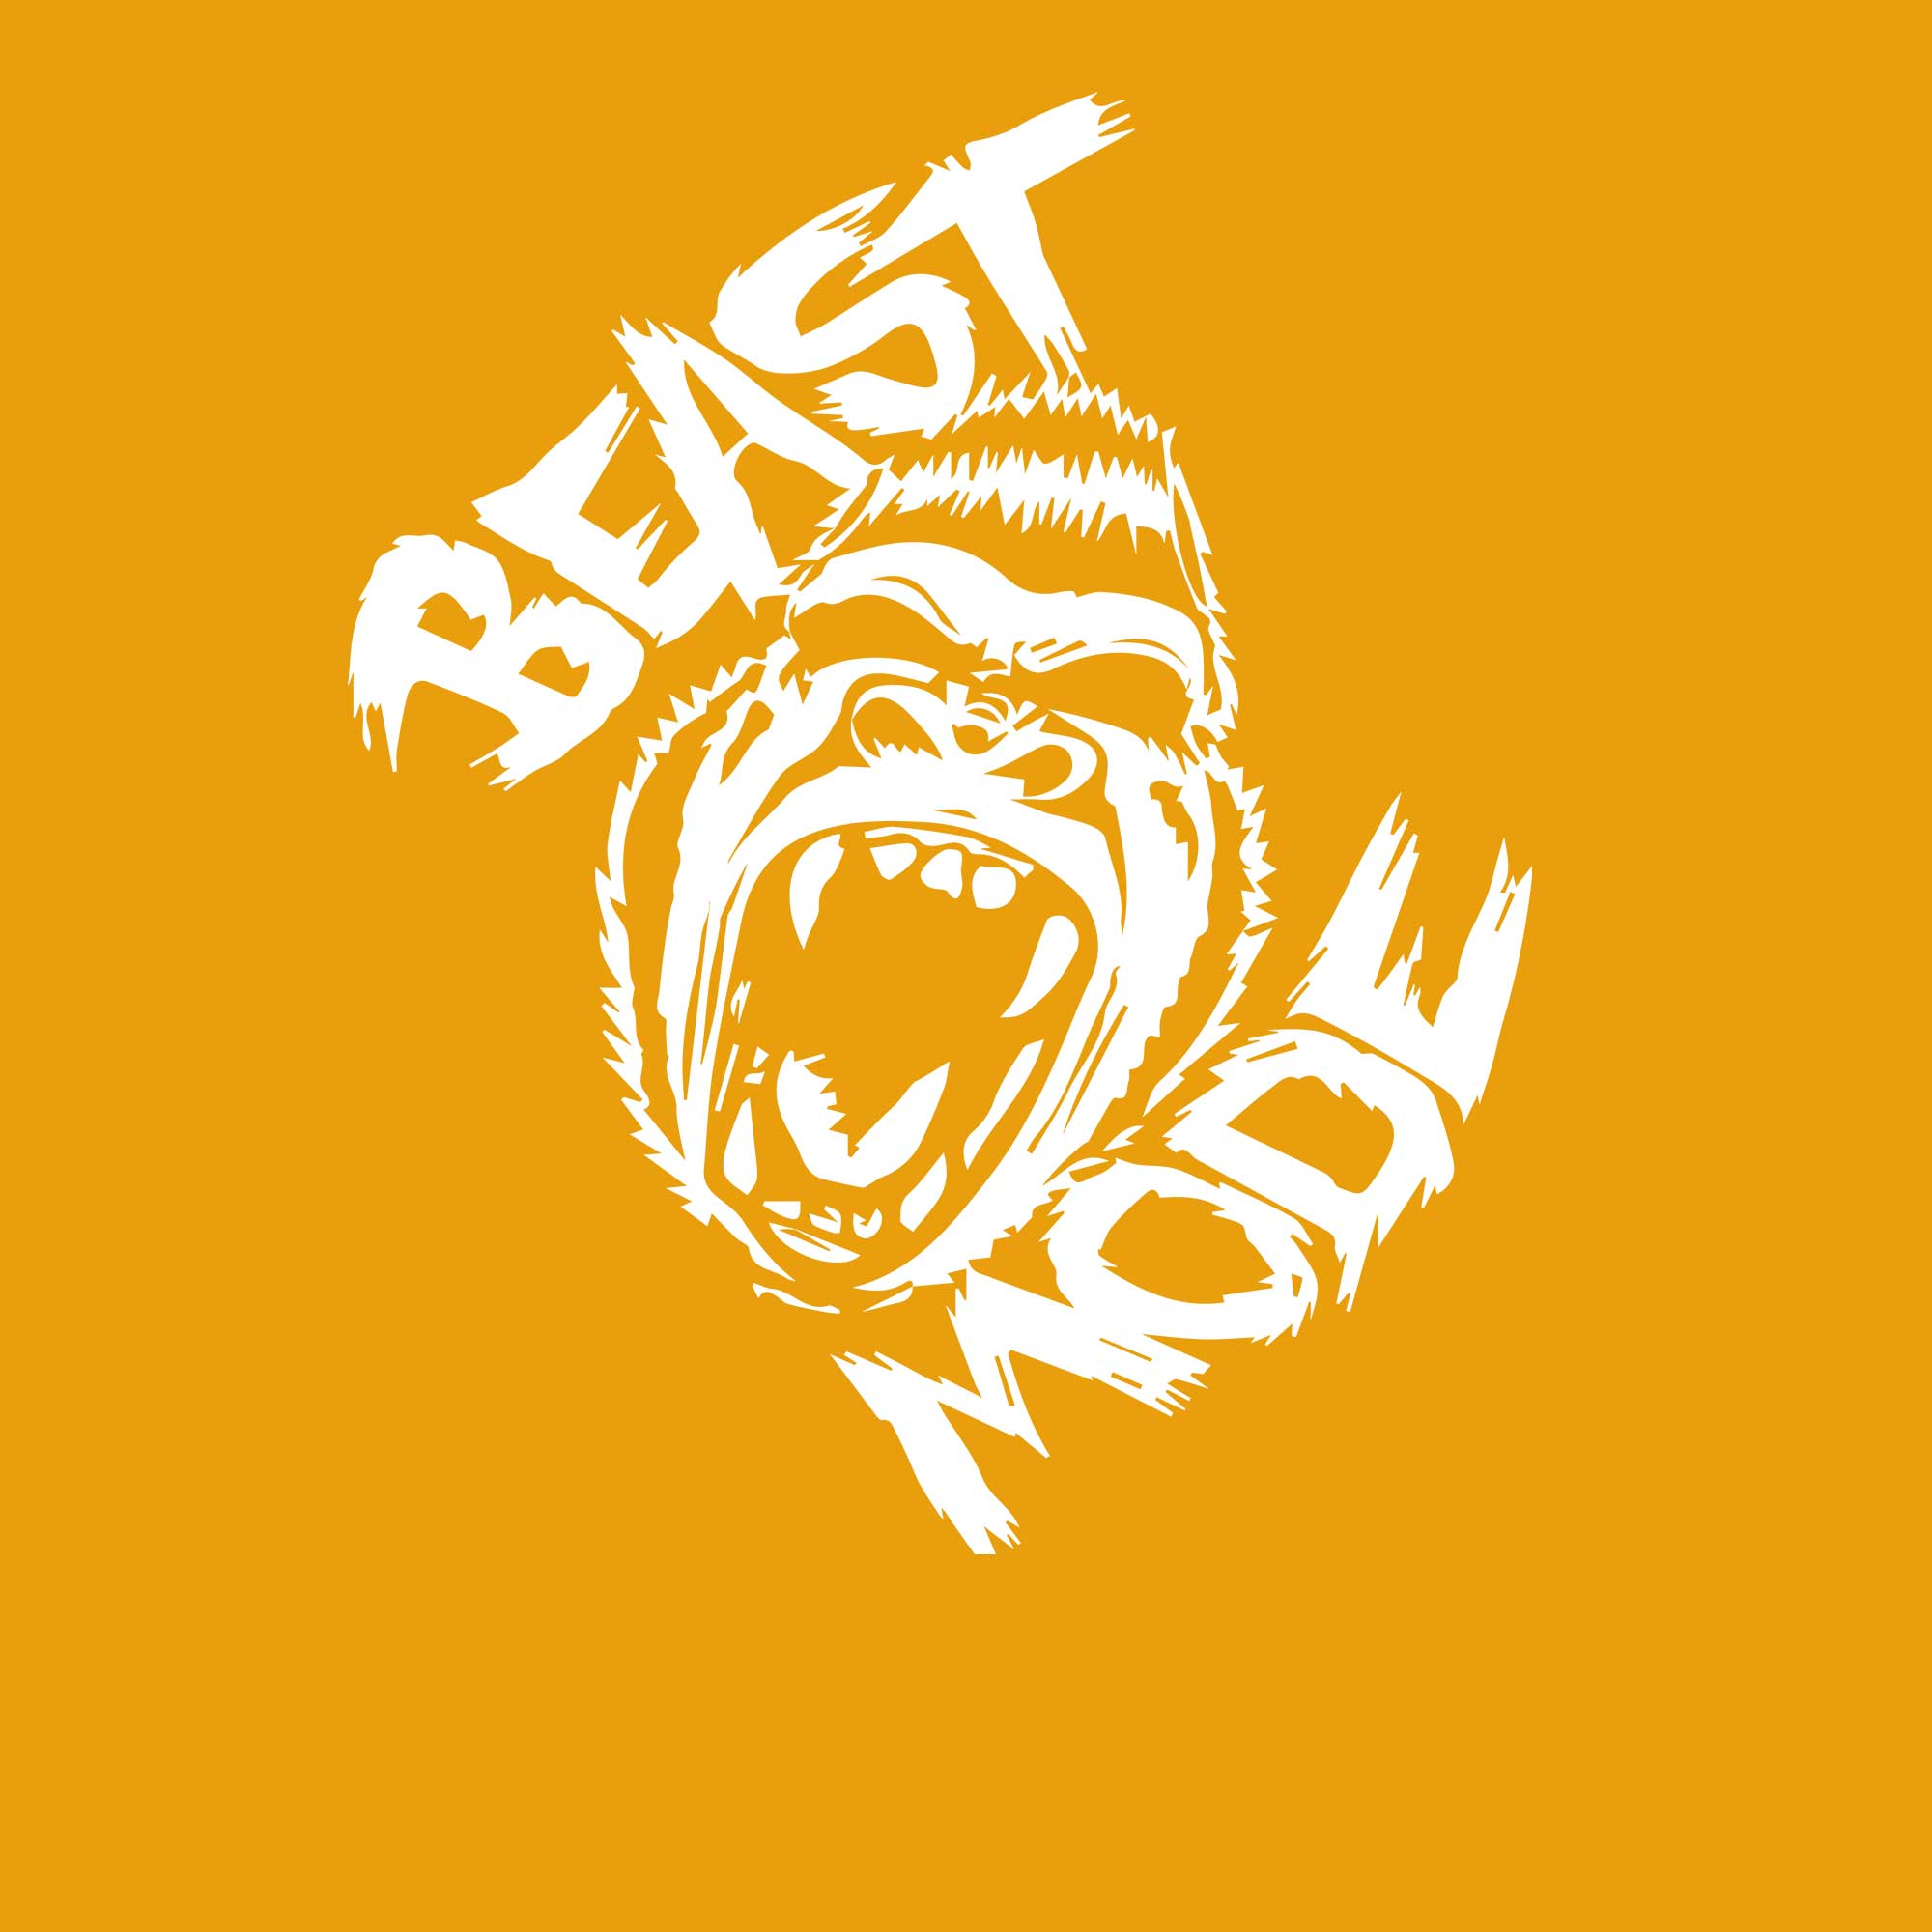 T-Shirt Swag Beast mode Graphic Printed T-Shirt